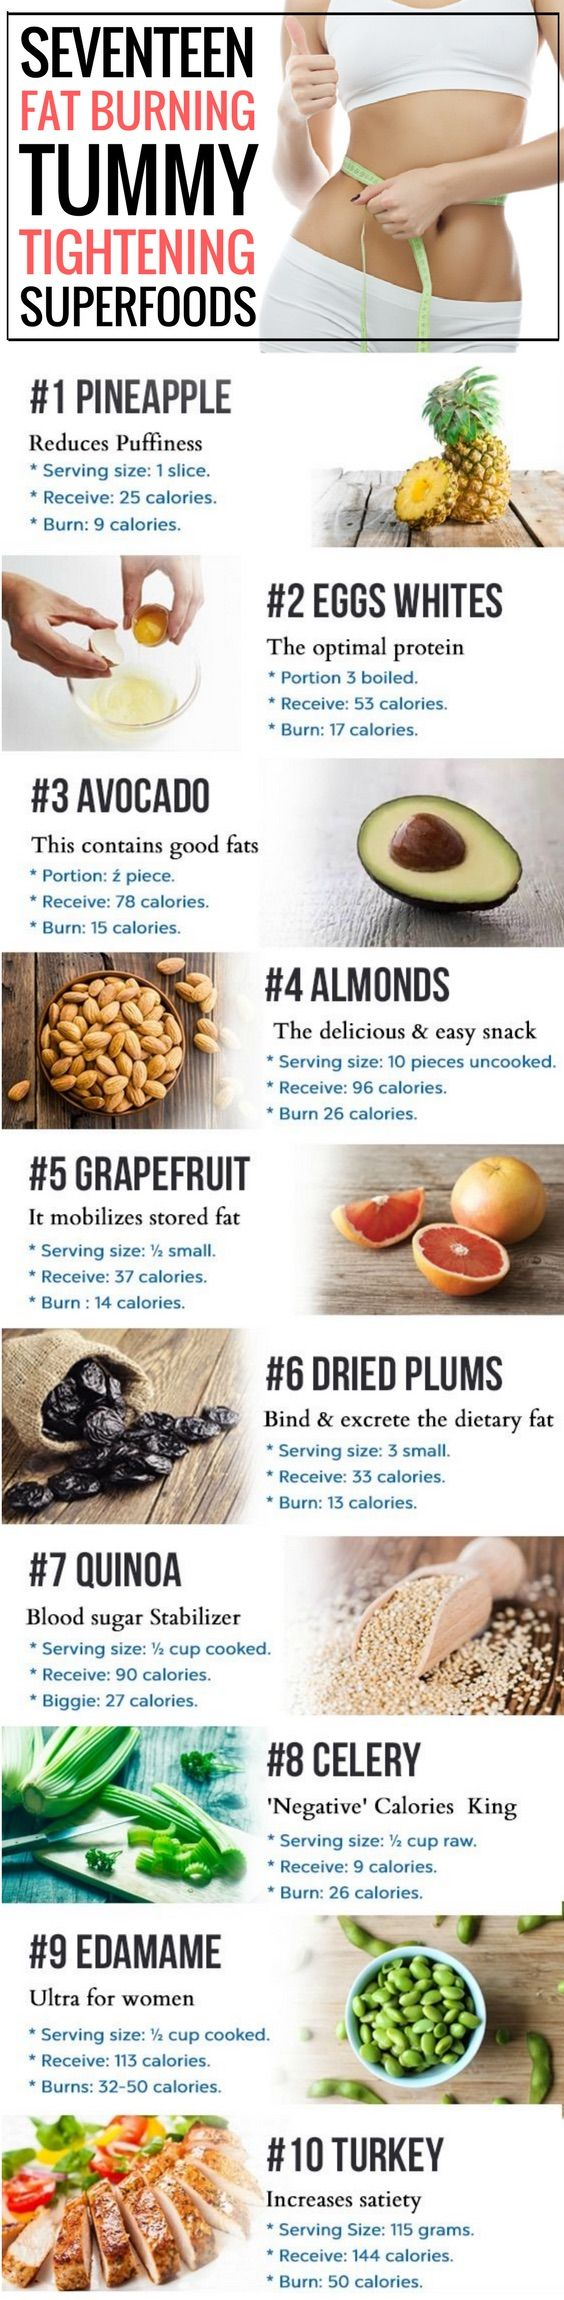 17 foods to eat if you want to lose weight fast.